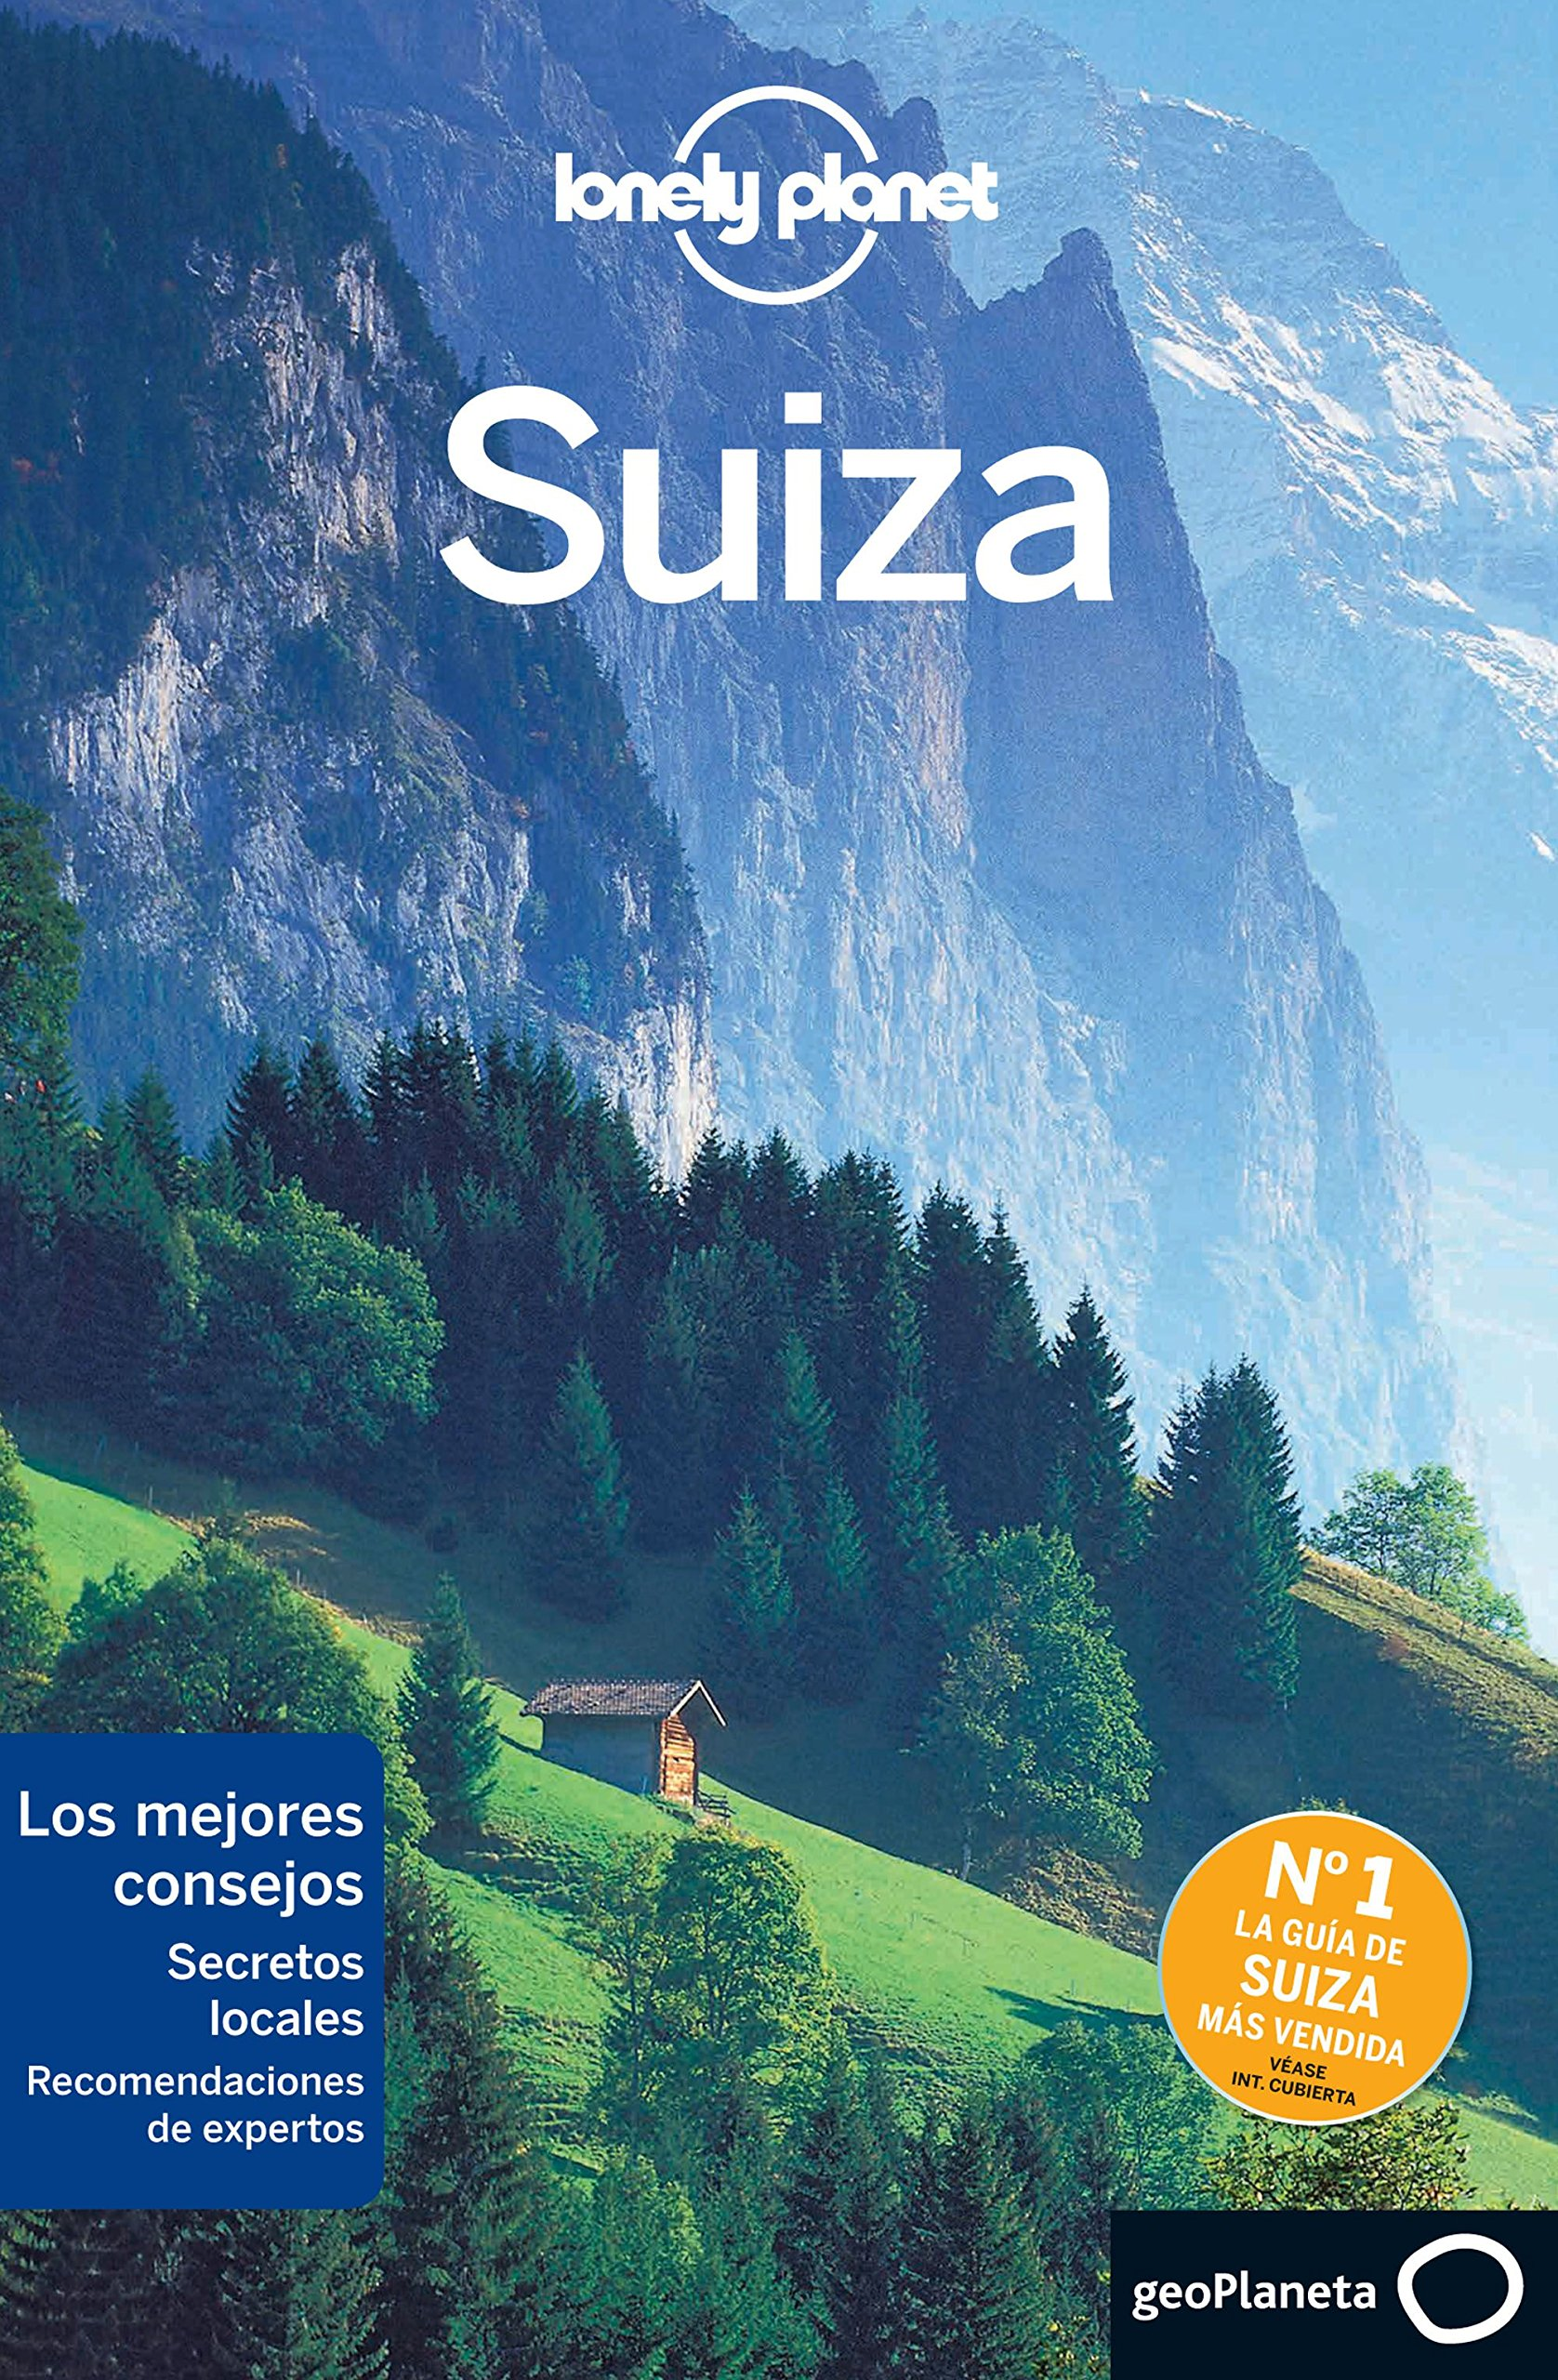 Lonely Planet Suiza (Travel Guide) (Spanish Edition) (Spanish) Paperback – October 1, 2015